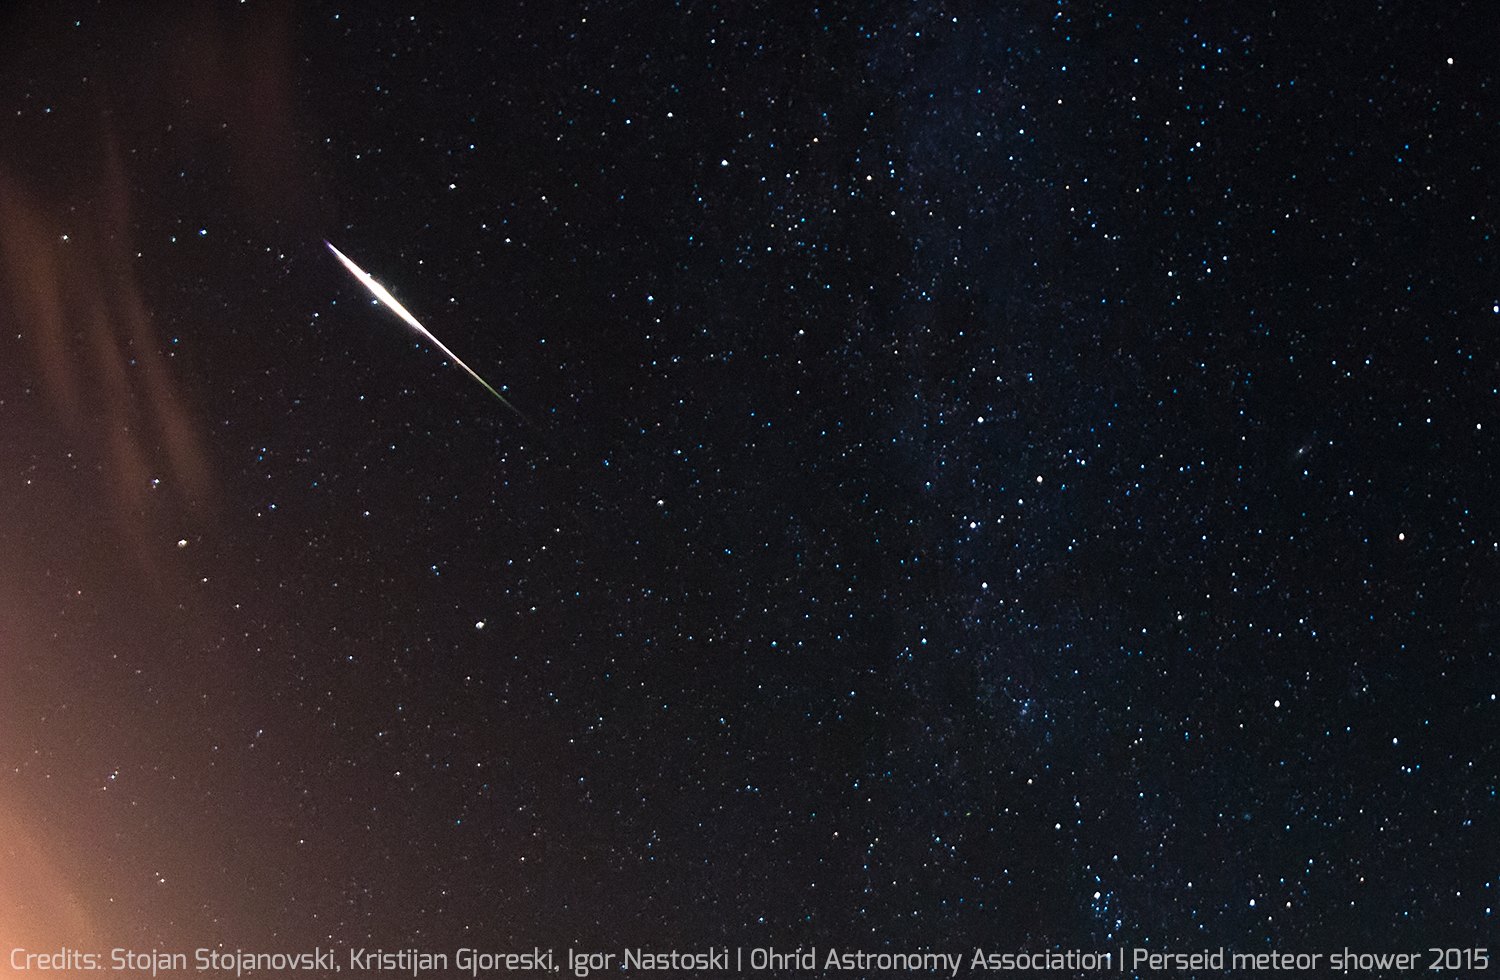 This amazing view of a Perseid meteor was captured by amateur astronomers Stojan Stojanovski, Kristijan Gjoreski and Igor Nastoski of the Ohrid Astronomy Association in Ohrid, Macedonia during the peak of the Perseid meteor shower on Aug. 12-13, 2015.